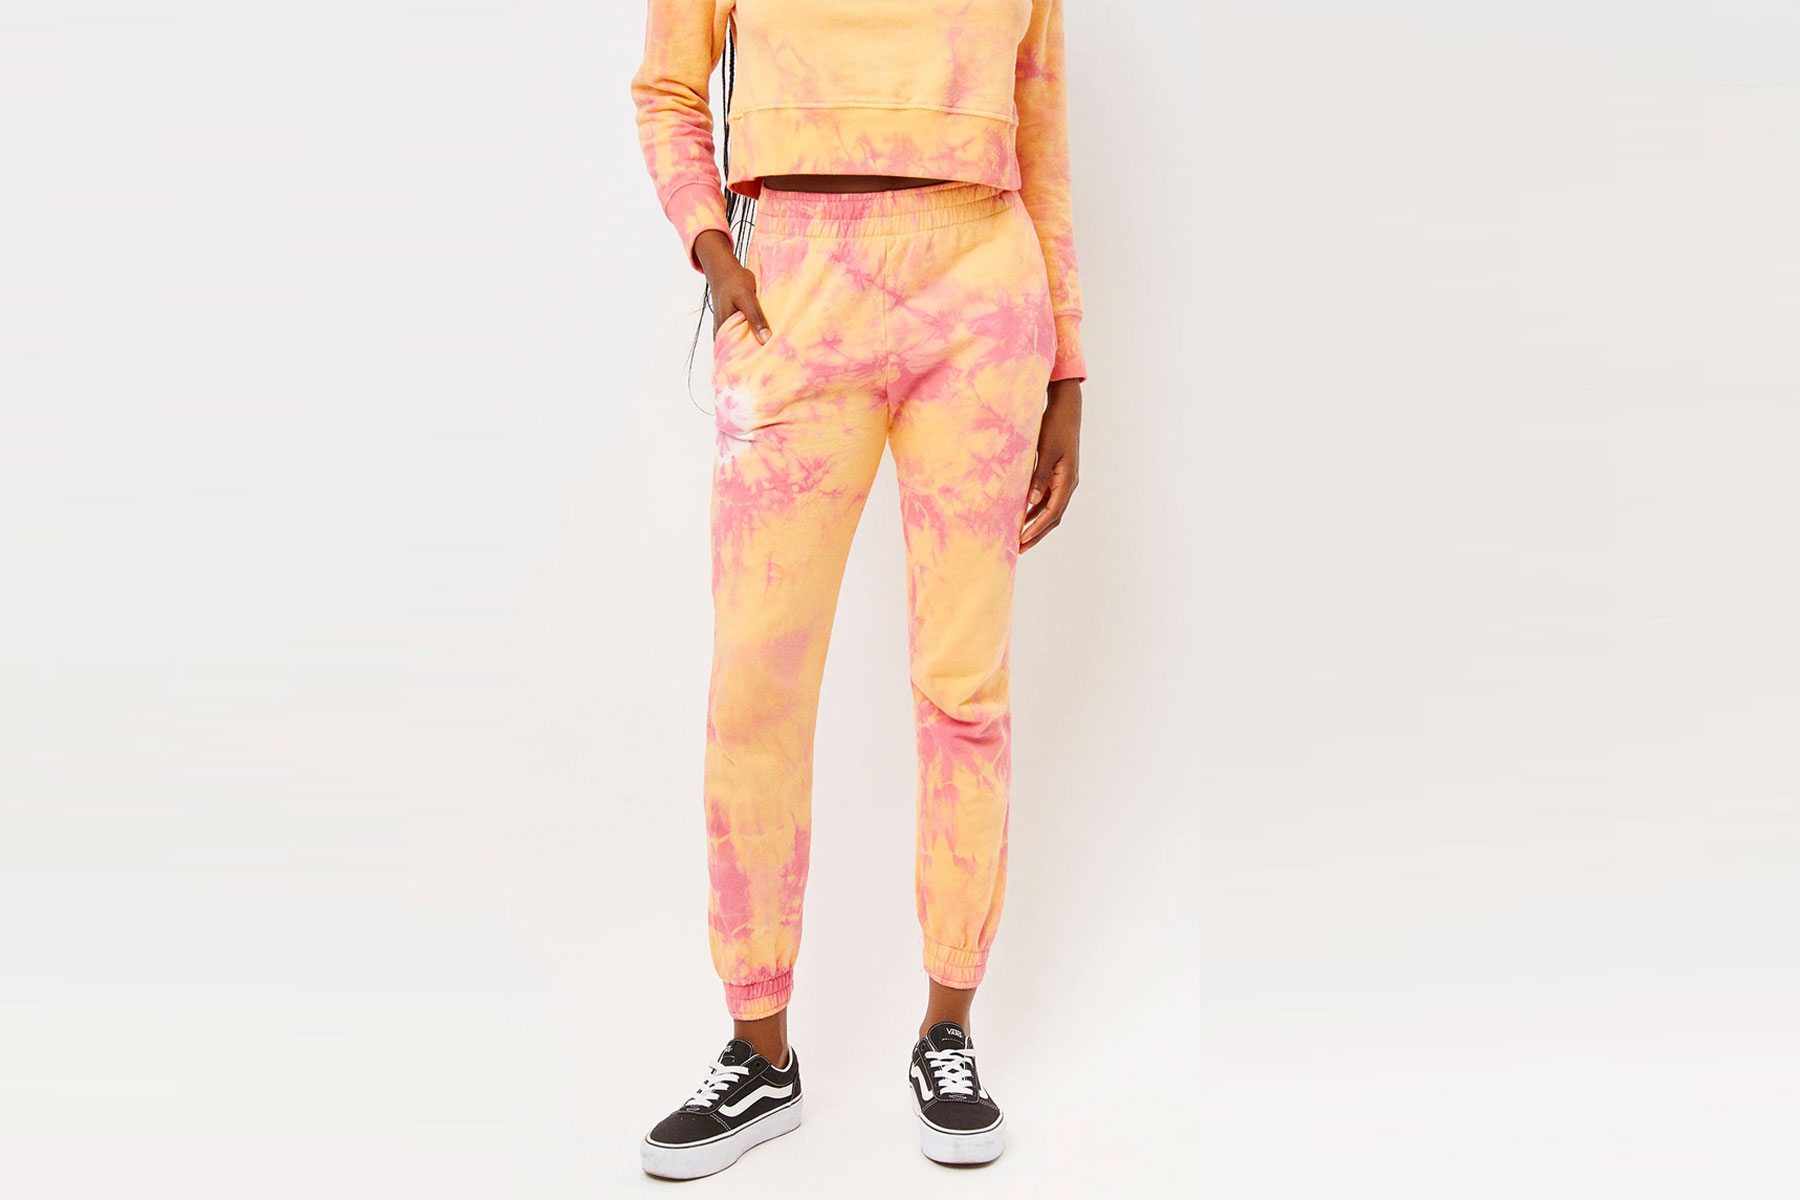 Orange and pink tie-dye sweatpants